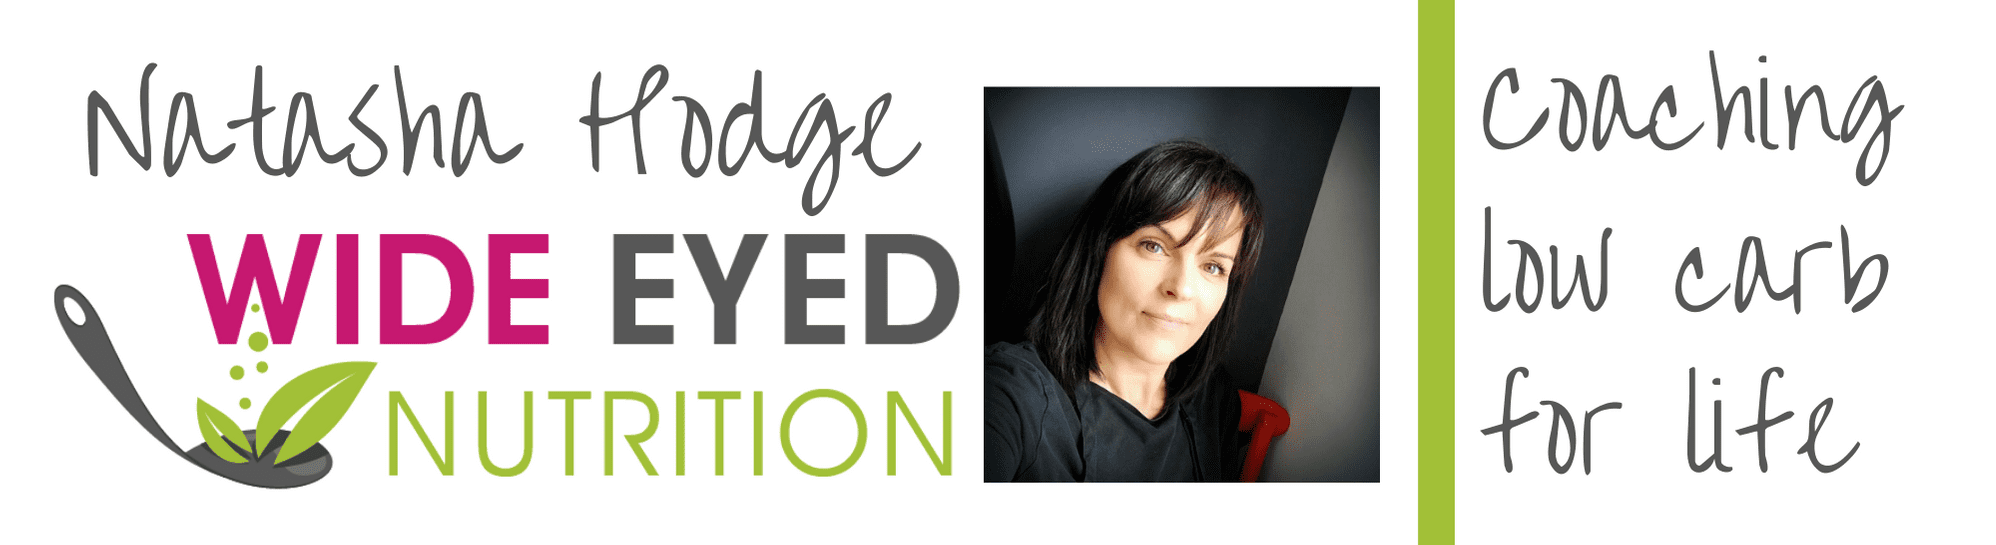 natasha hodge and wide eyed nutrition logo with a leaf on a spoon and a headshot of natasha with the [hrase coaching low carb for life